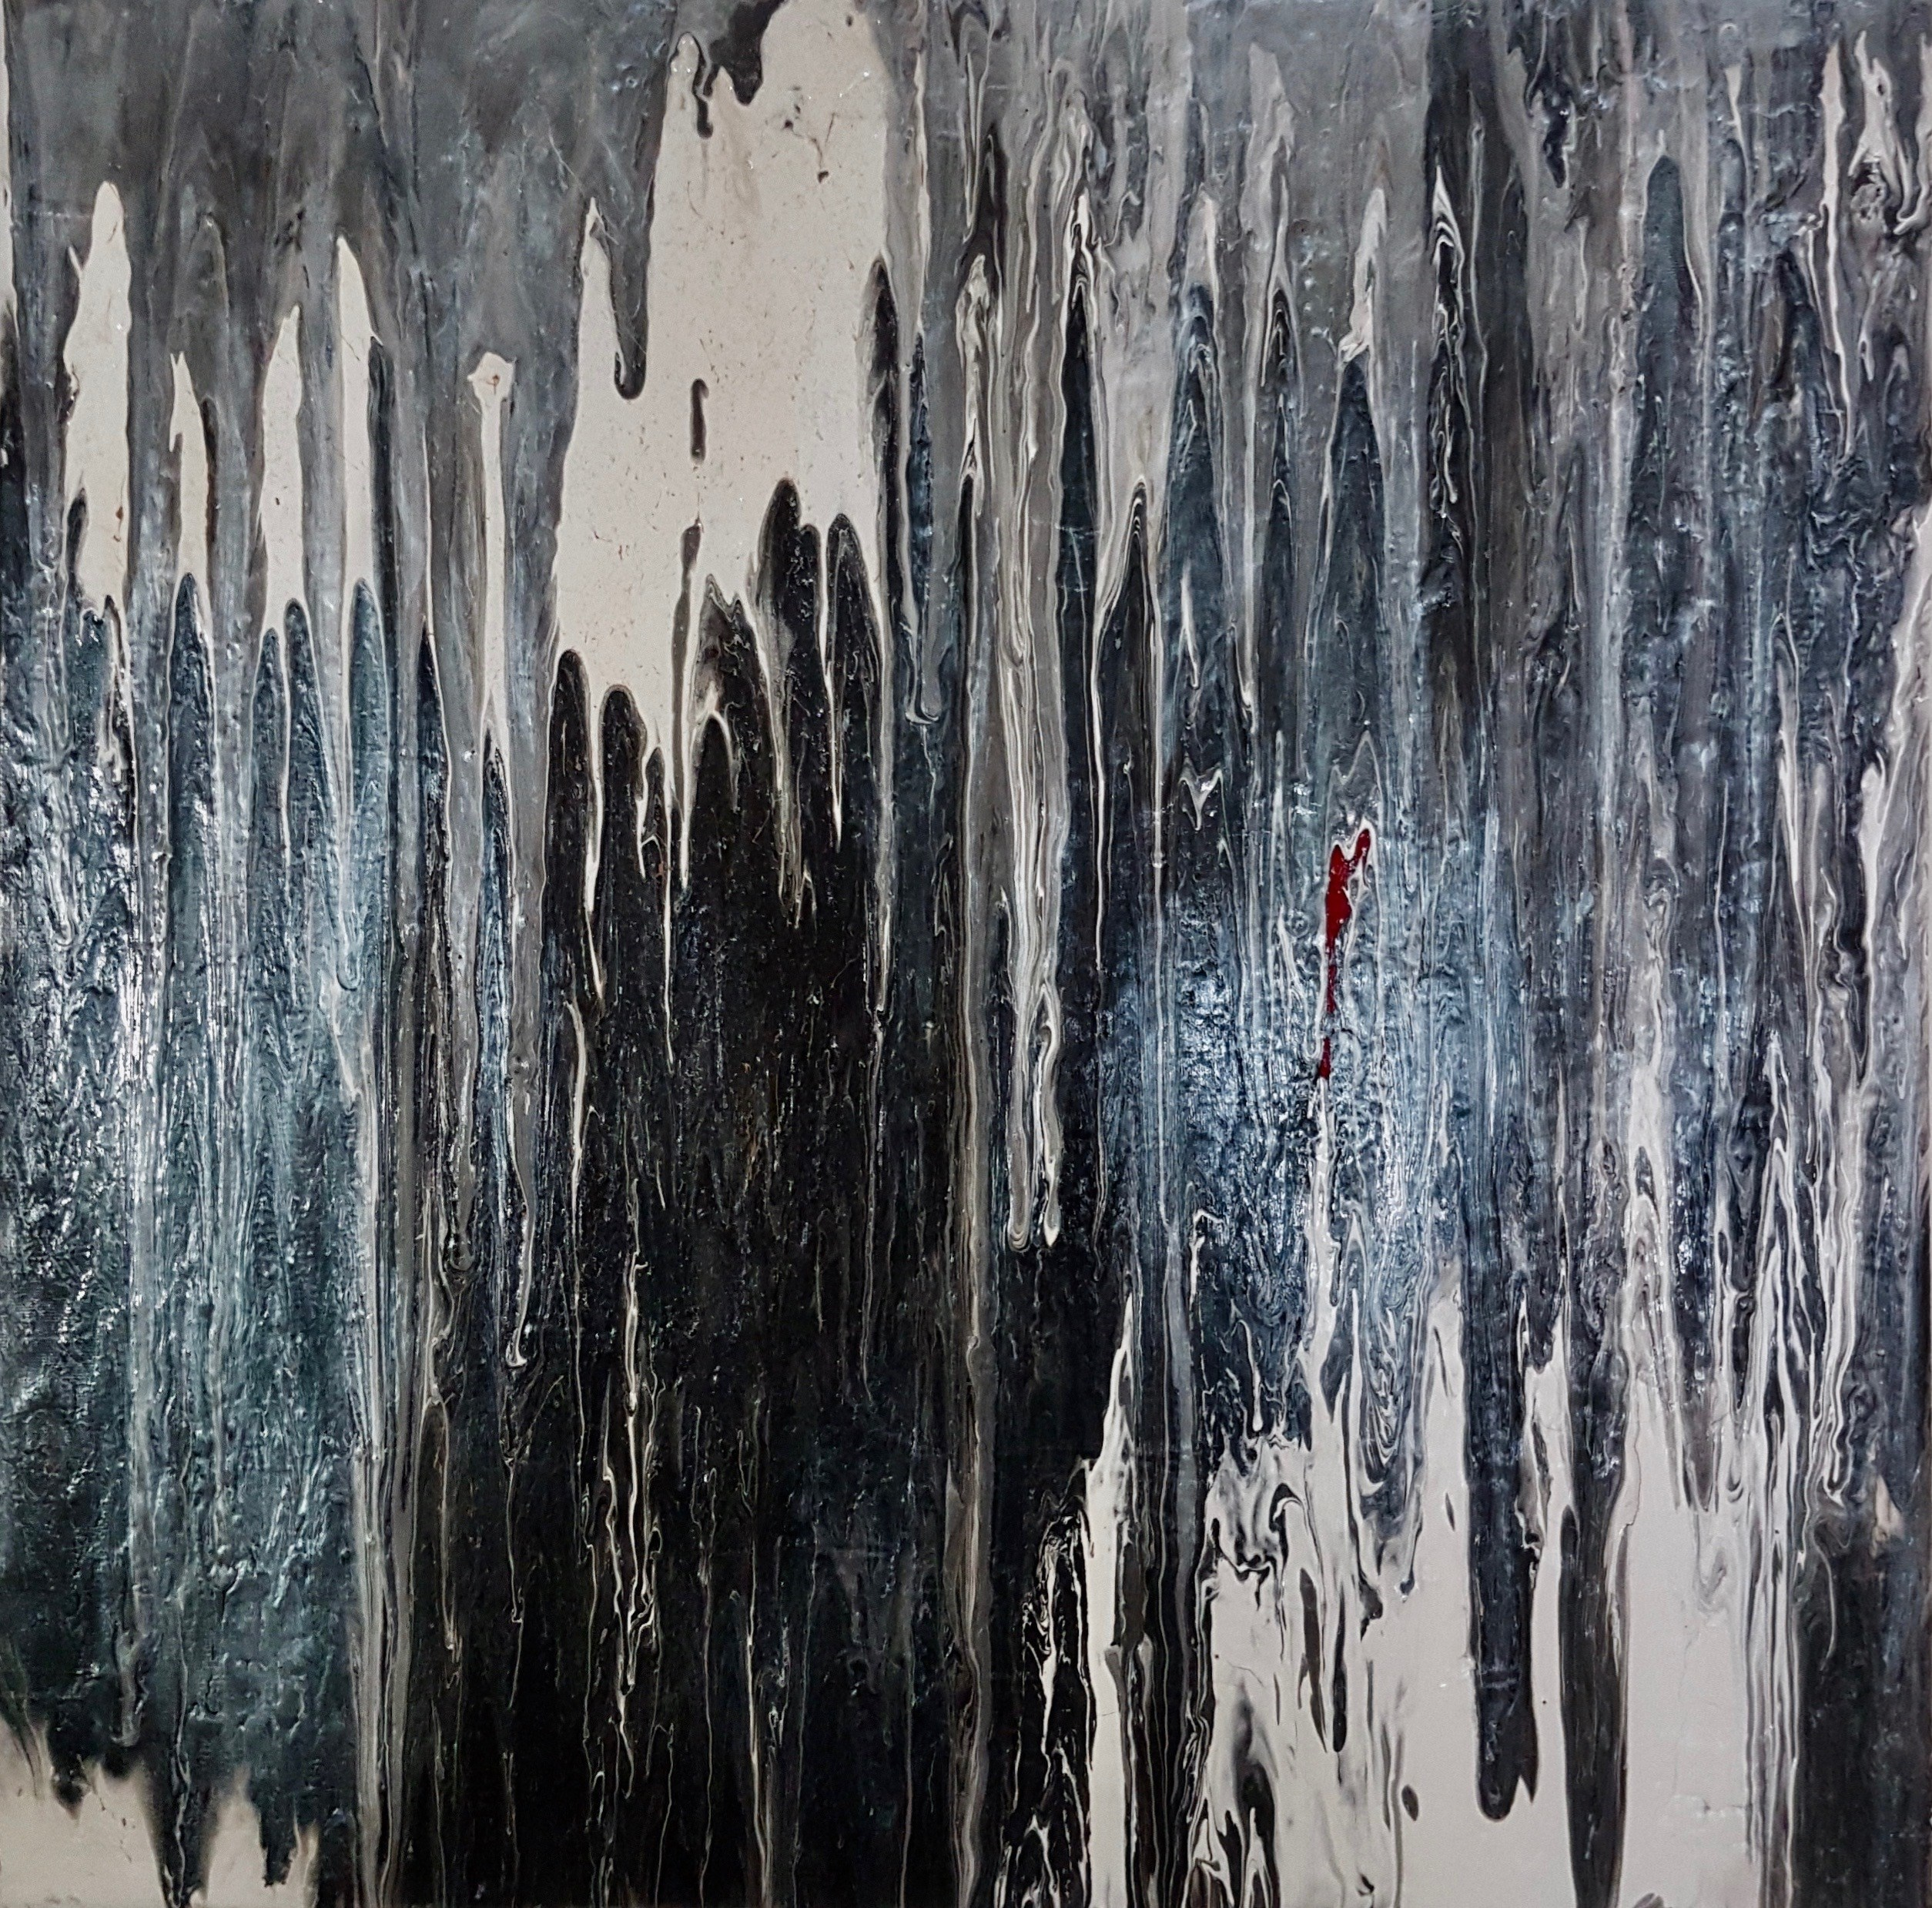 Fluid, original Abstract Acrylic Painting by Art Sauvage